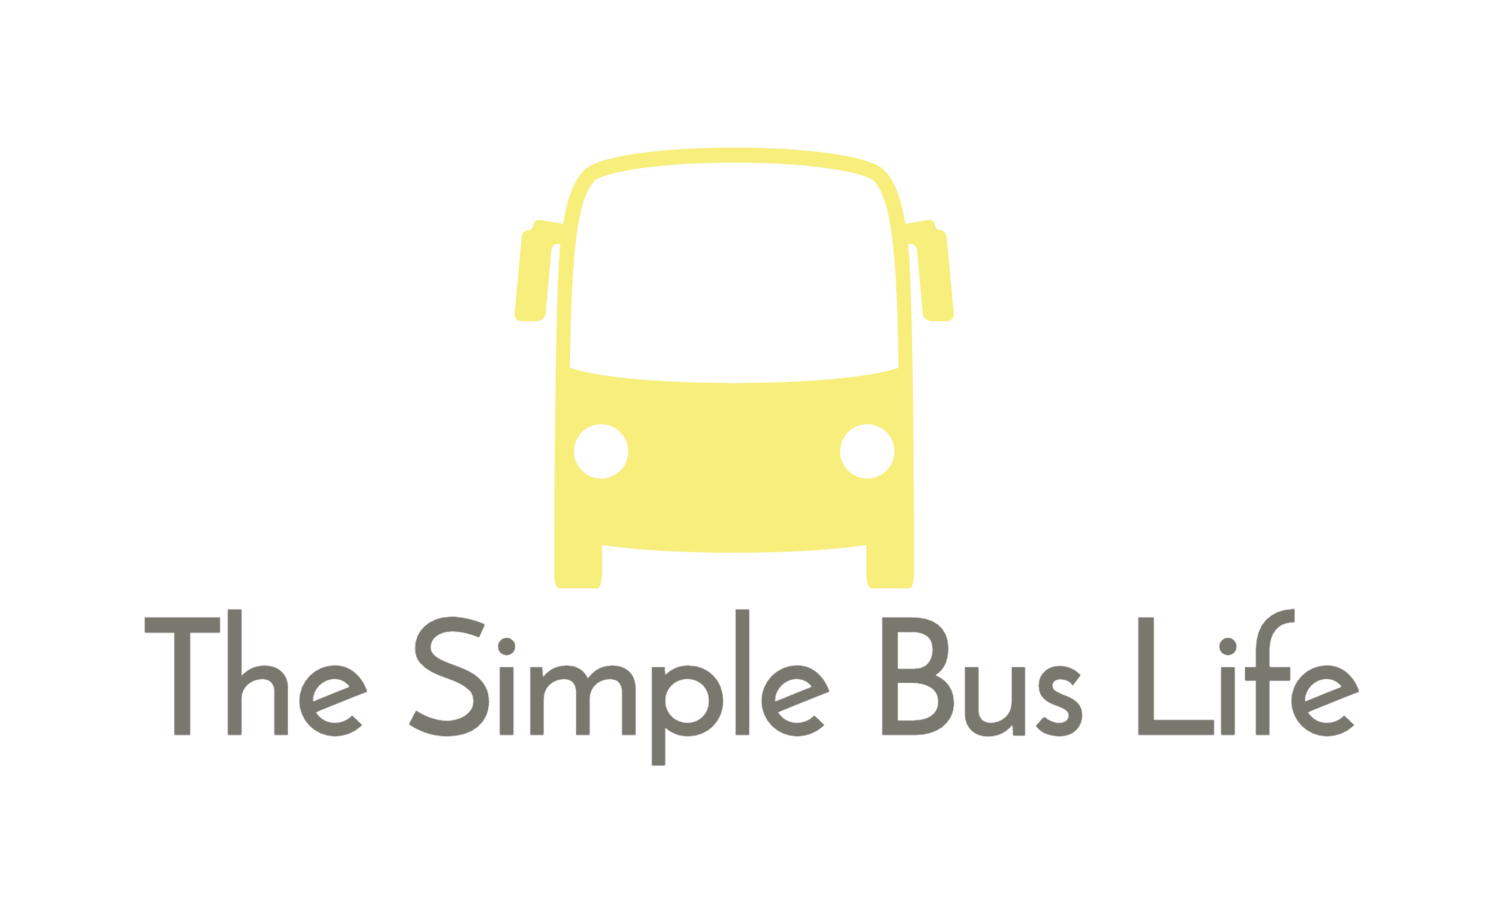 The Simple Bus Life